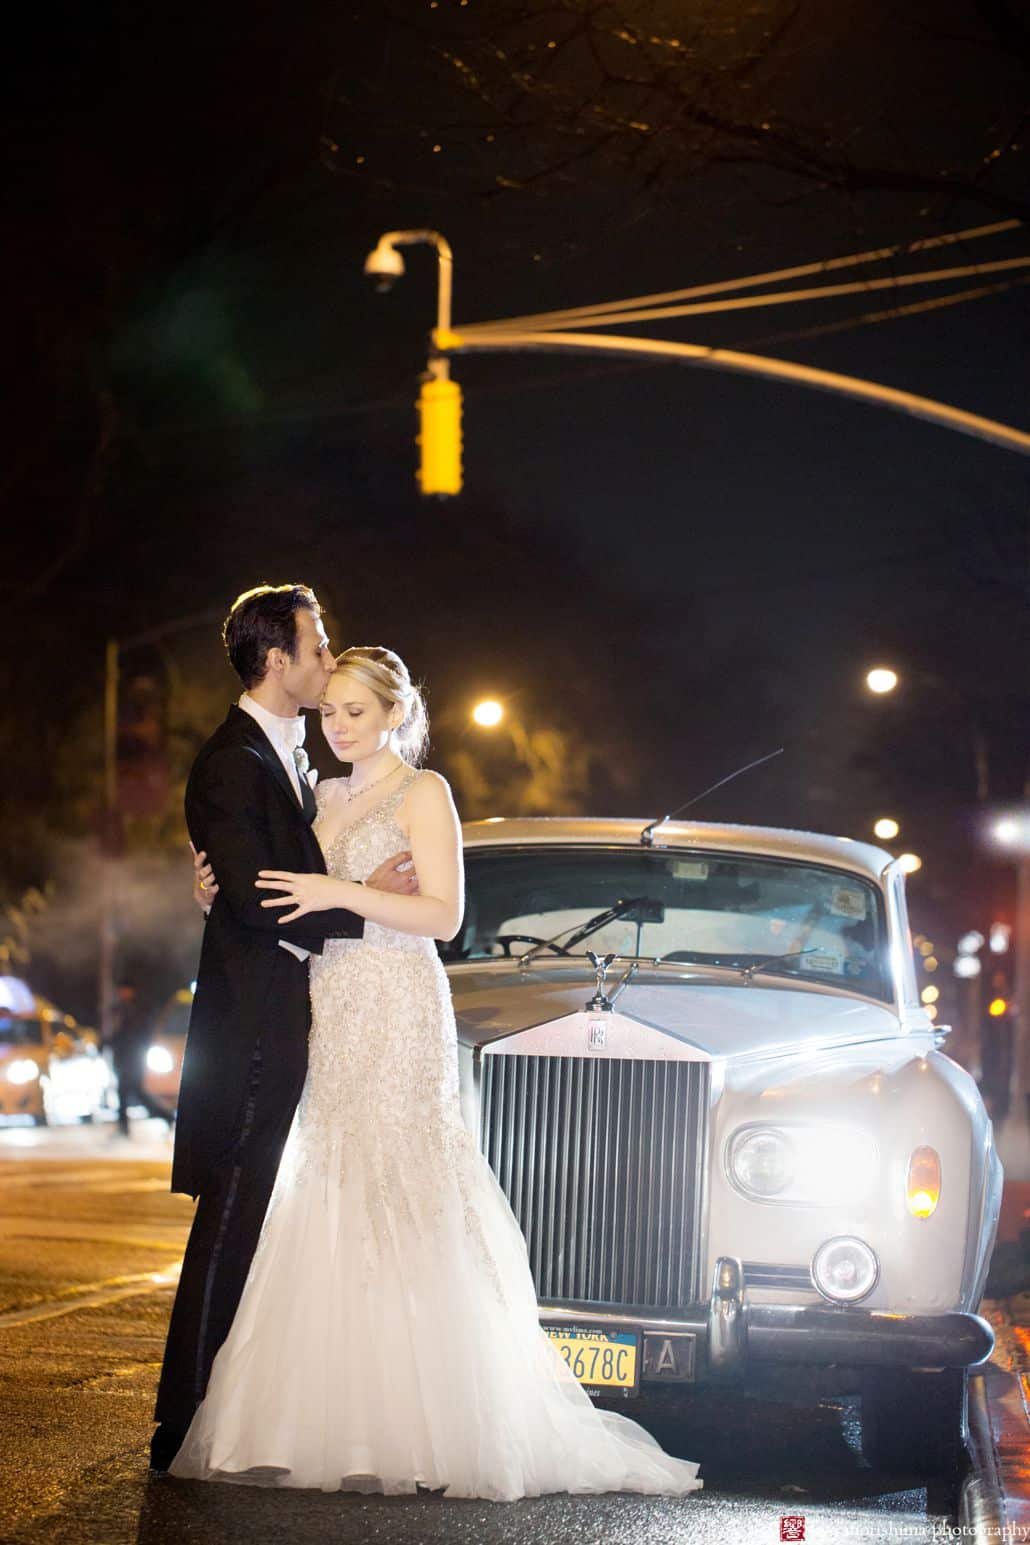 Bride and groom embrace in front of a 1955 Rolls Royce for an evening wedding photo in NYC at the Lotos Club. Lotos Club Wedding Photography by Kyo Morishima.